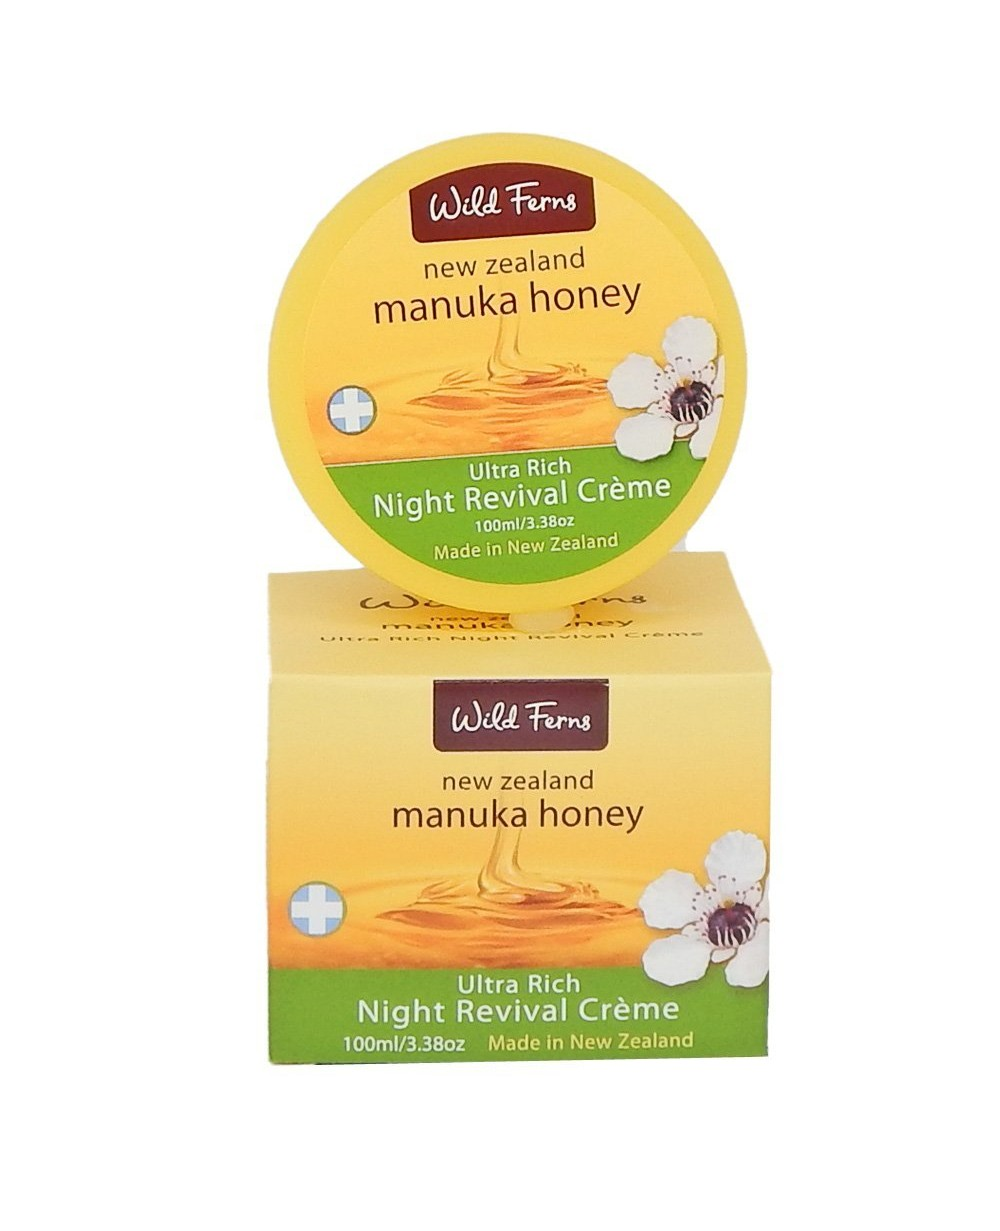 WILD FERNS MANUKA HONEY ULTRA RICH NIGHT REVIVAL CREME, 100ML